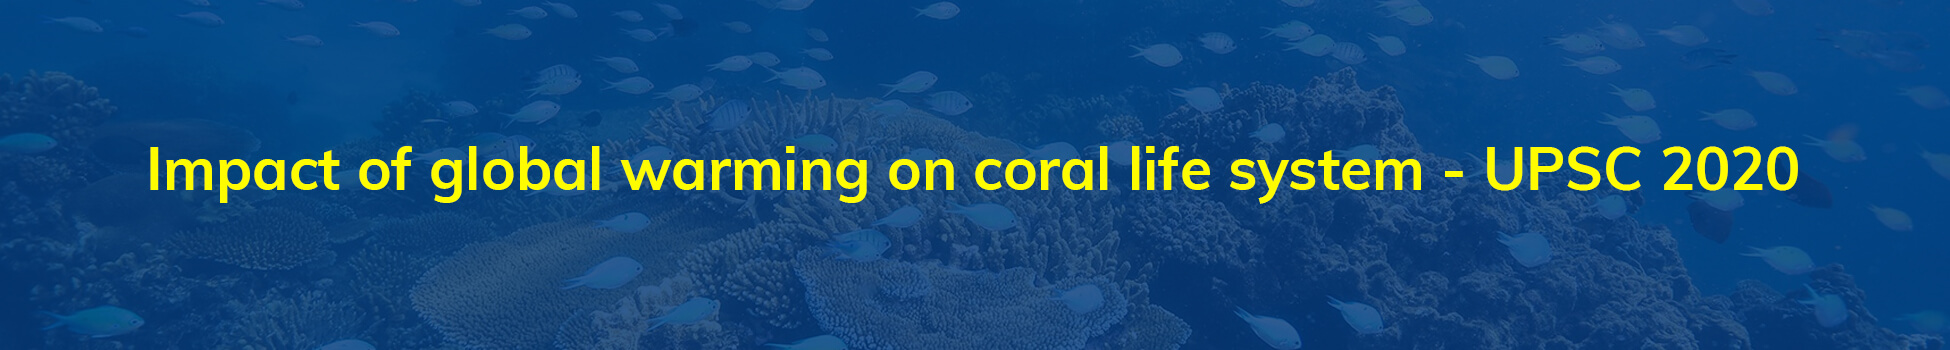 Impact of global warming on coral life system - UPSC 2020